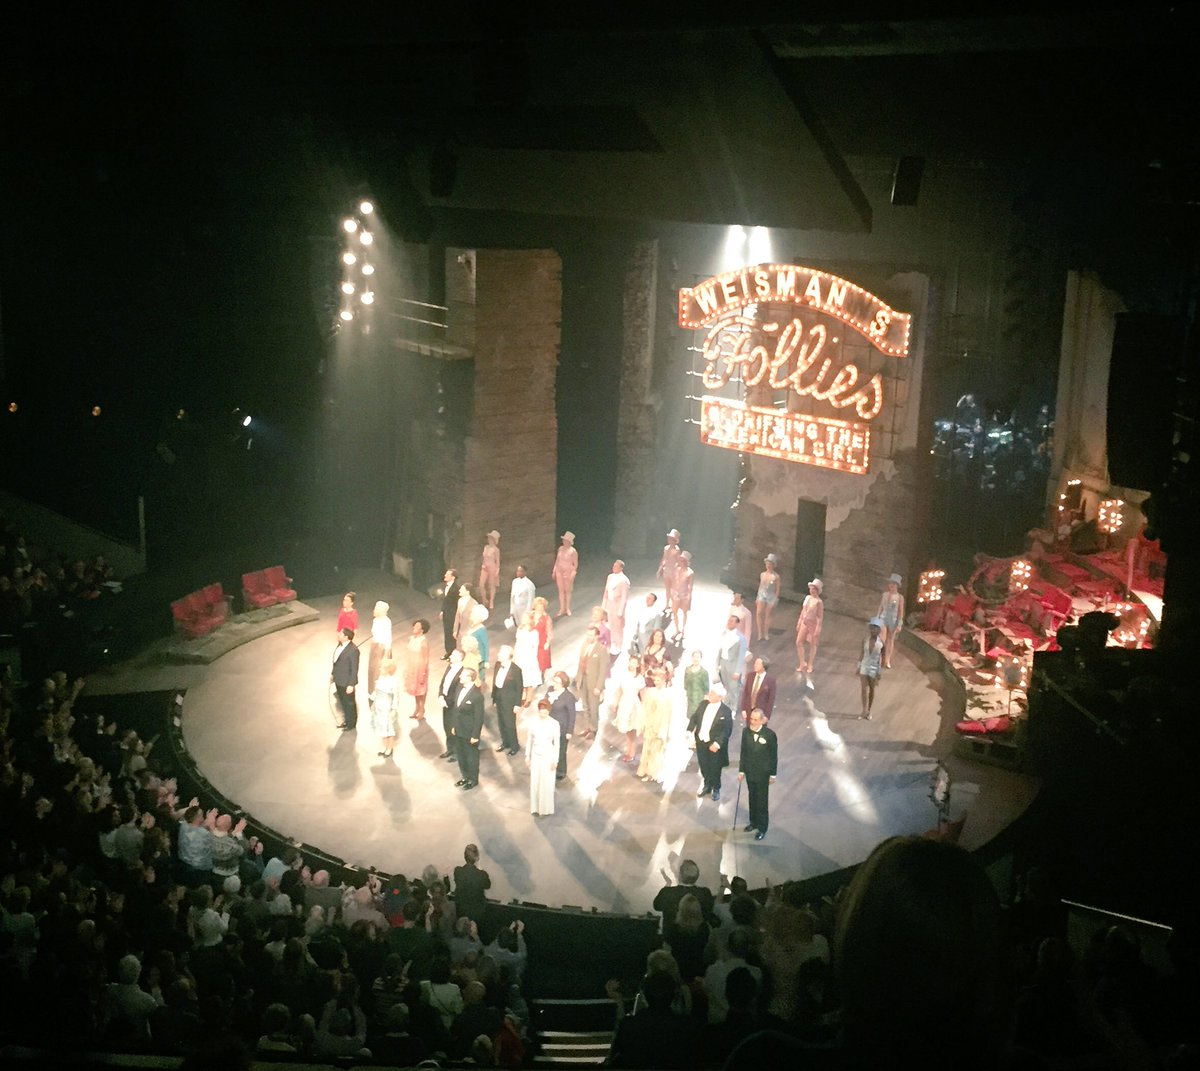 #Follies @NationalTheatre was a joy from start to finish - slick, engaging, gorgeous, wow! Vocal highlight @AliLanger duet w. Dame Barstow! Great 2 c @alexdeboo in it &amp; fab surprise to see my dance &quot;Commander&quot; (!) from RAM @JueArmstrong up there too! #GoSee<br>http://pic.twitter.com/qY2WBxhB2n